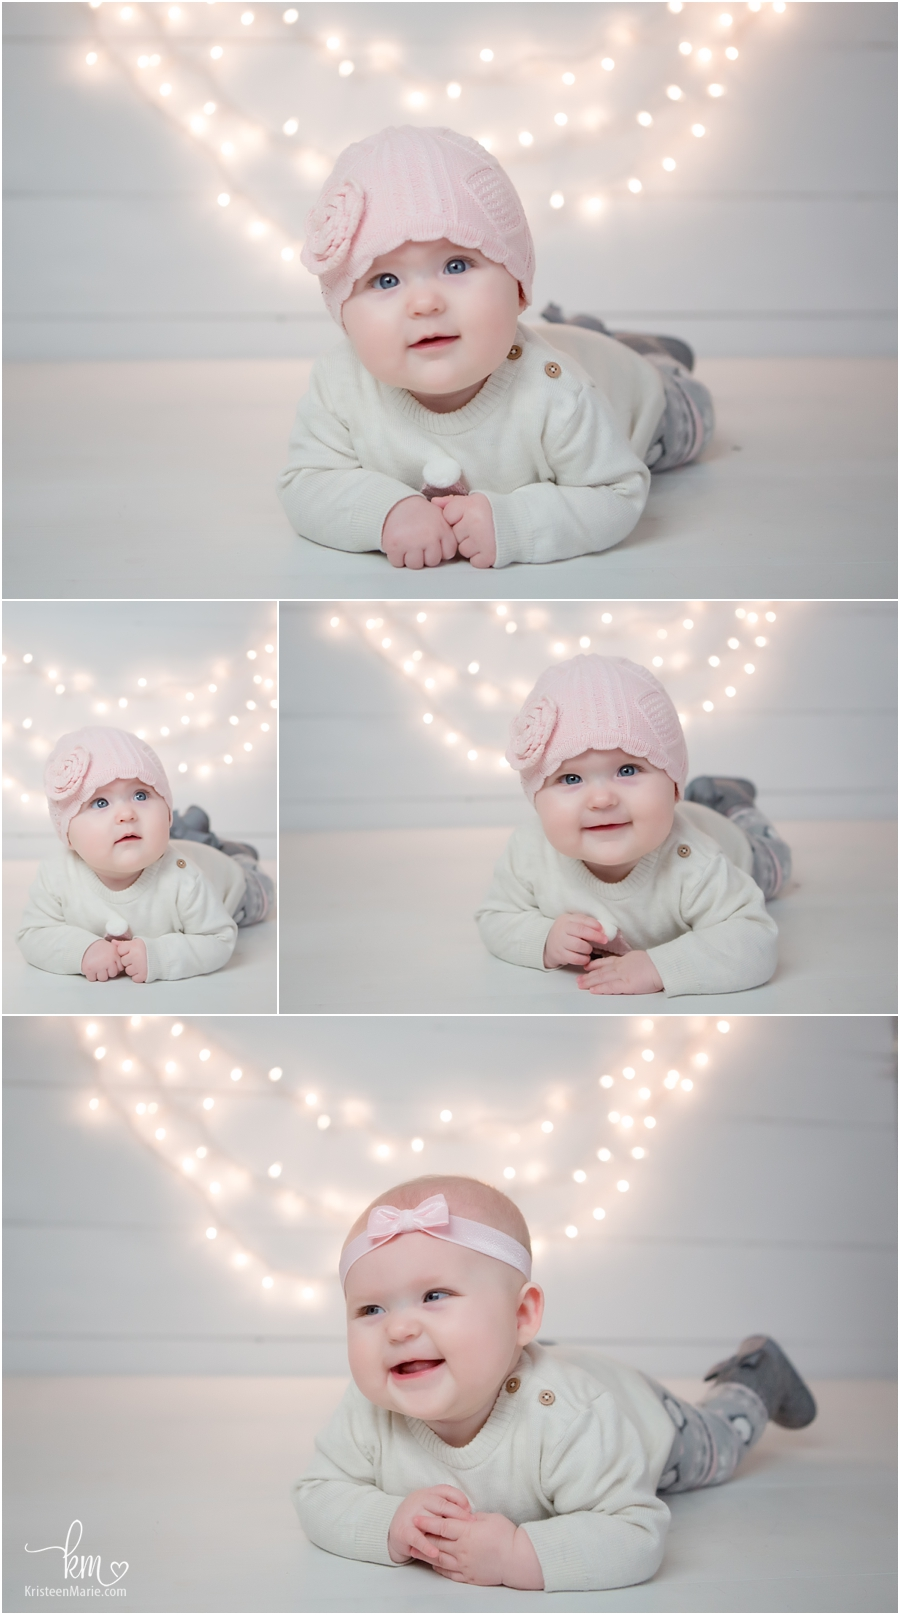 3 month old little girl photos with lights